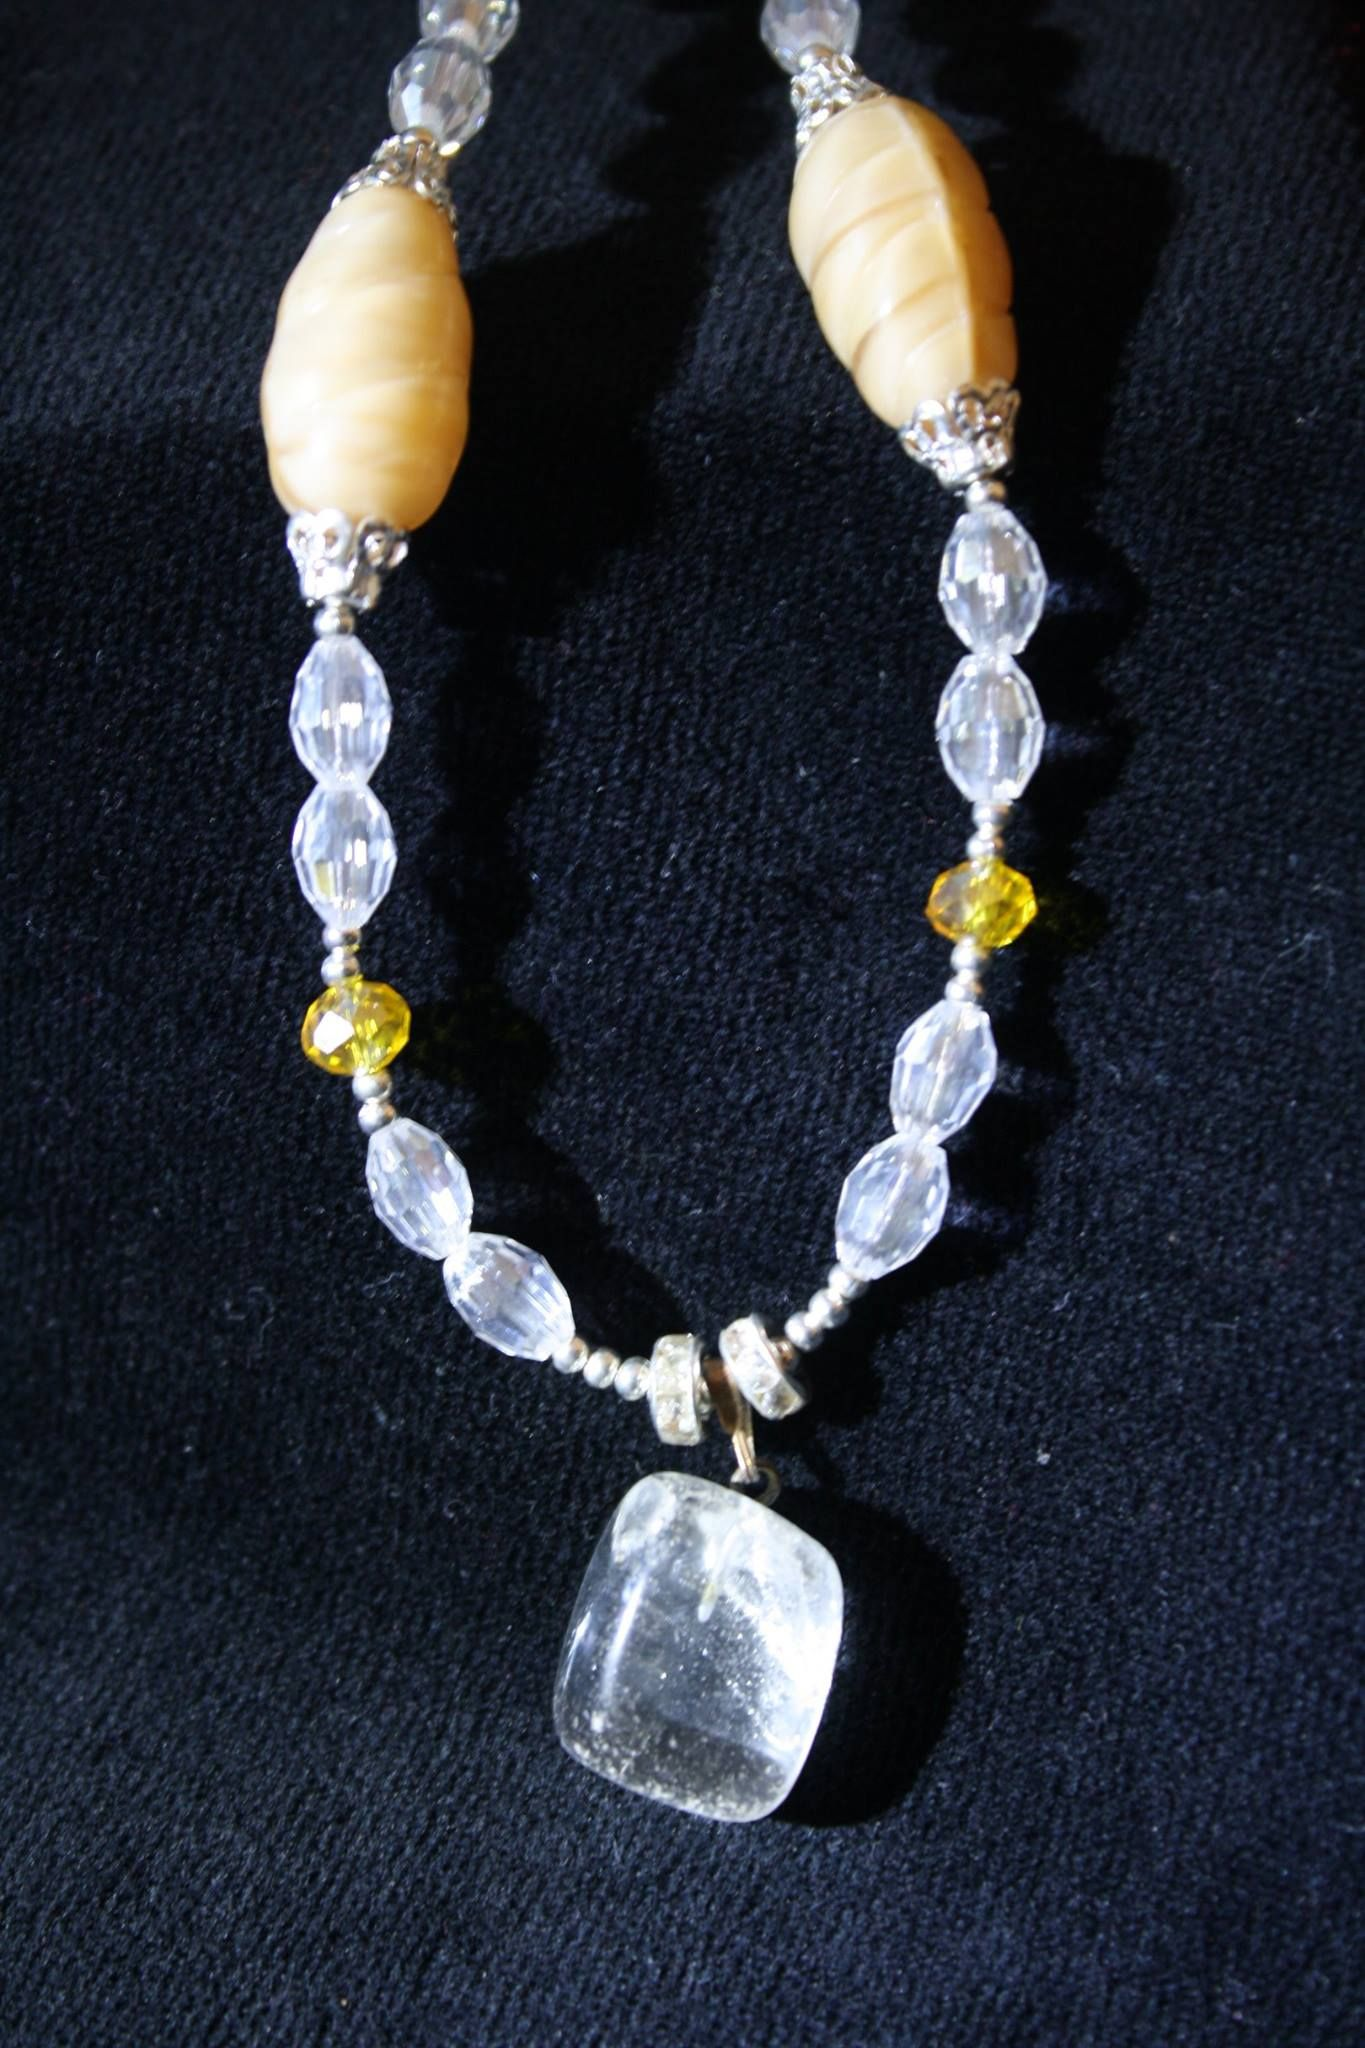 Luminousita: Cuarzo Puro - coordinado con aretes $100.00 pesos, Pure Quartz and cristals.  Buy in Facebook AVAILABLE